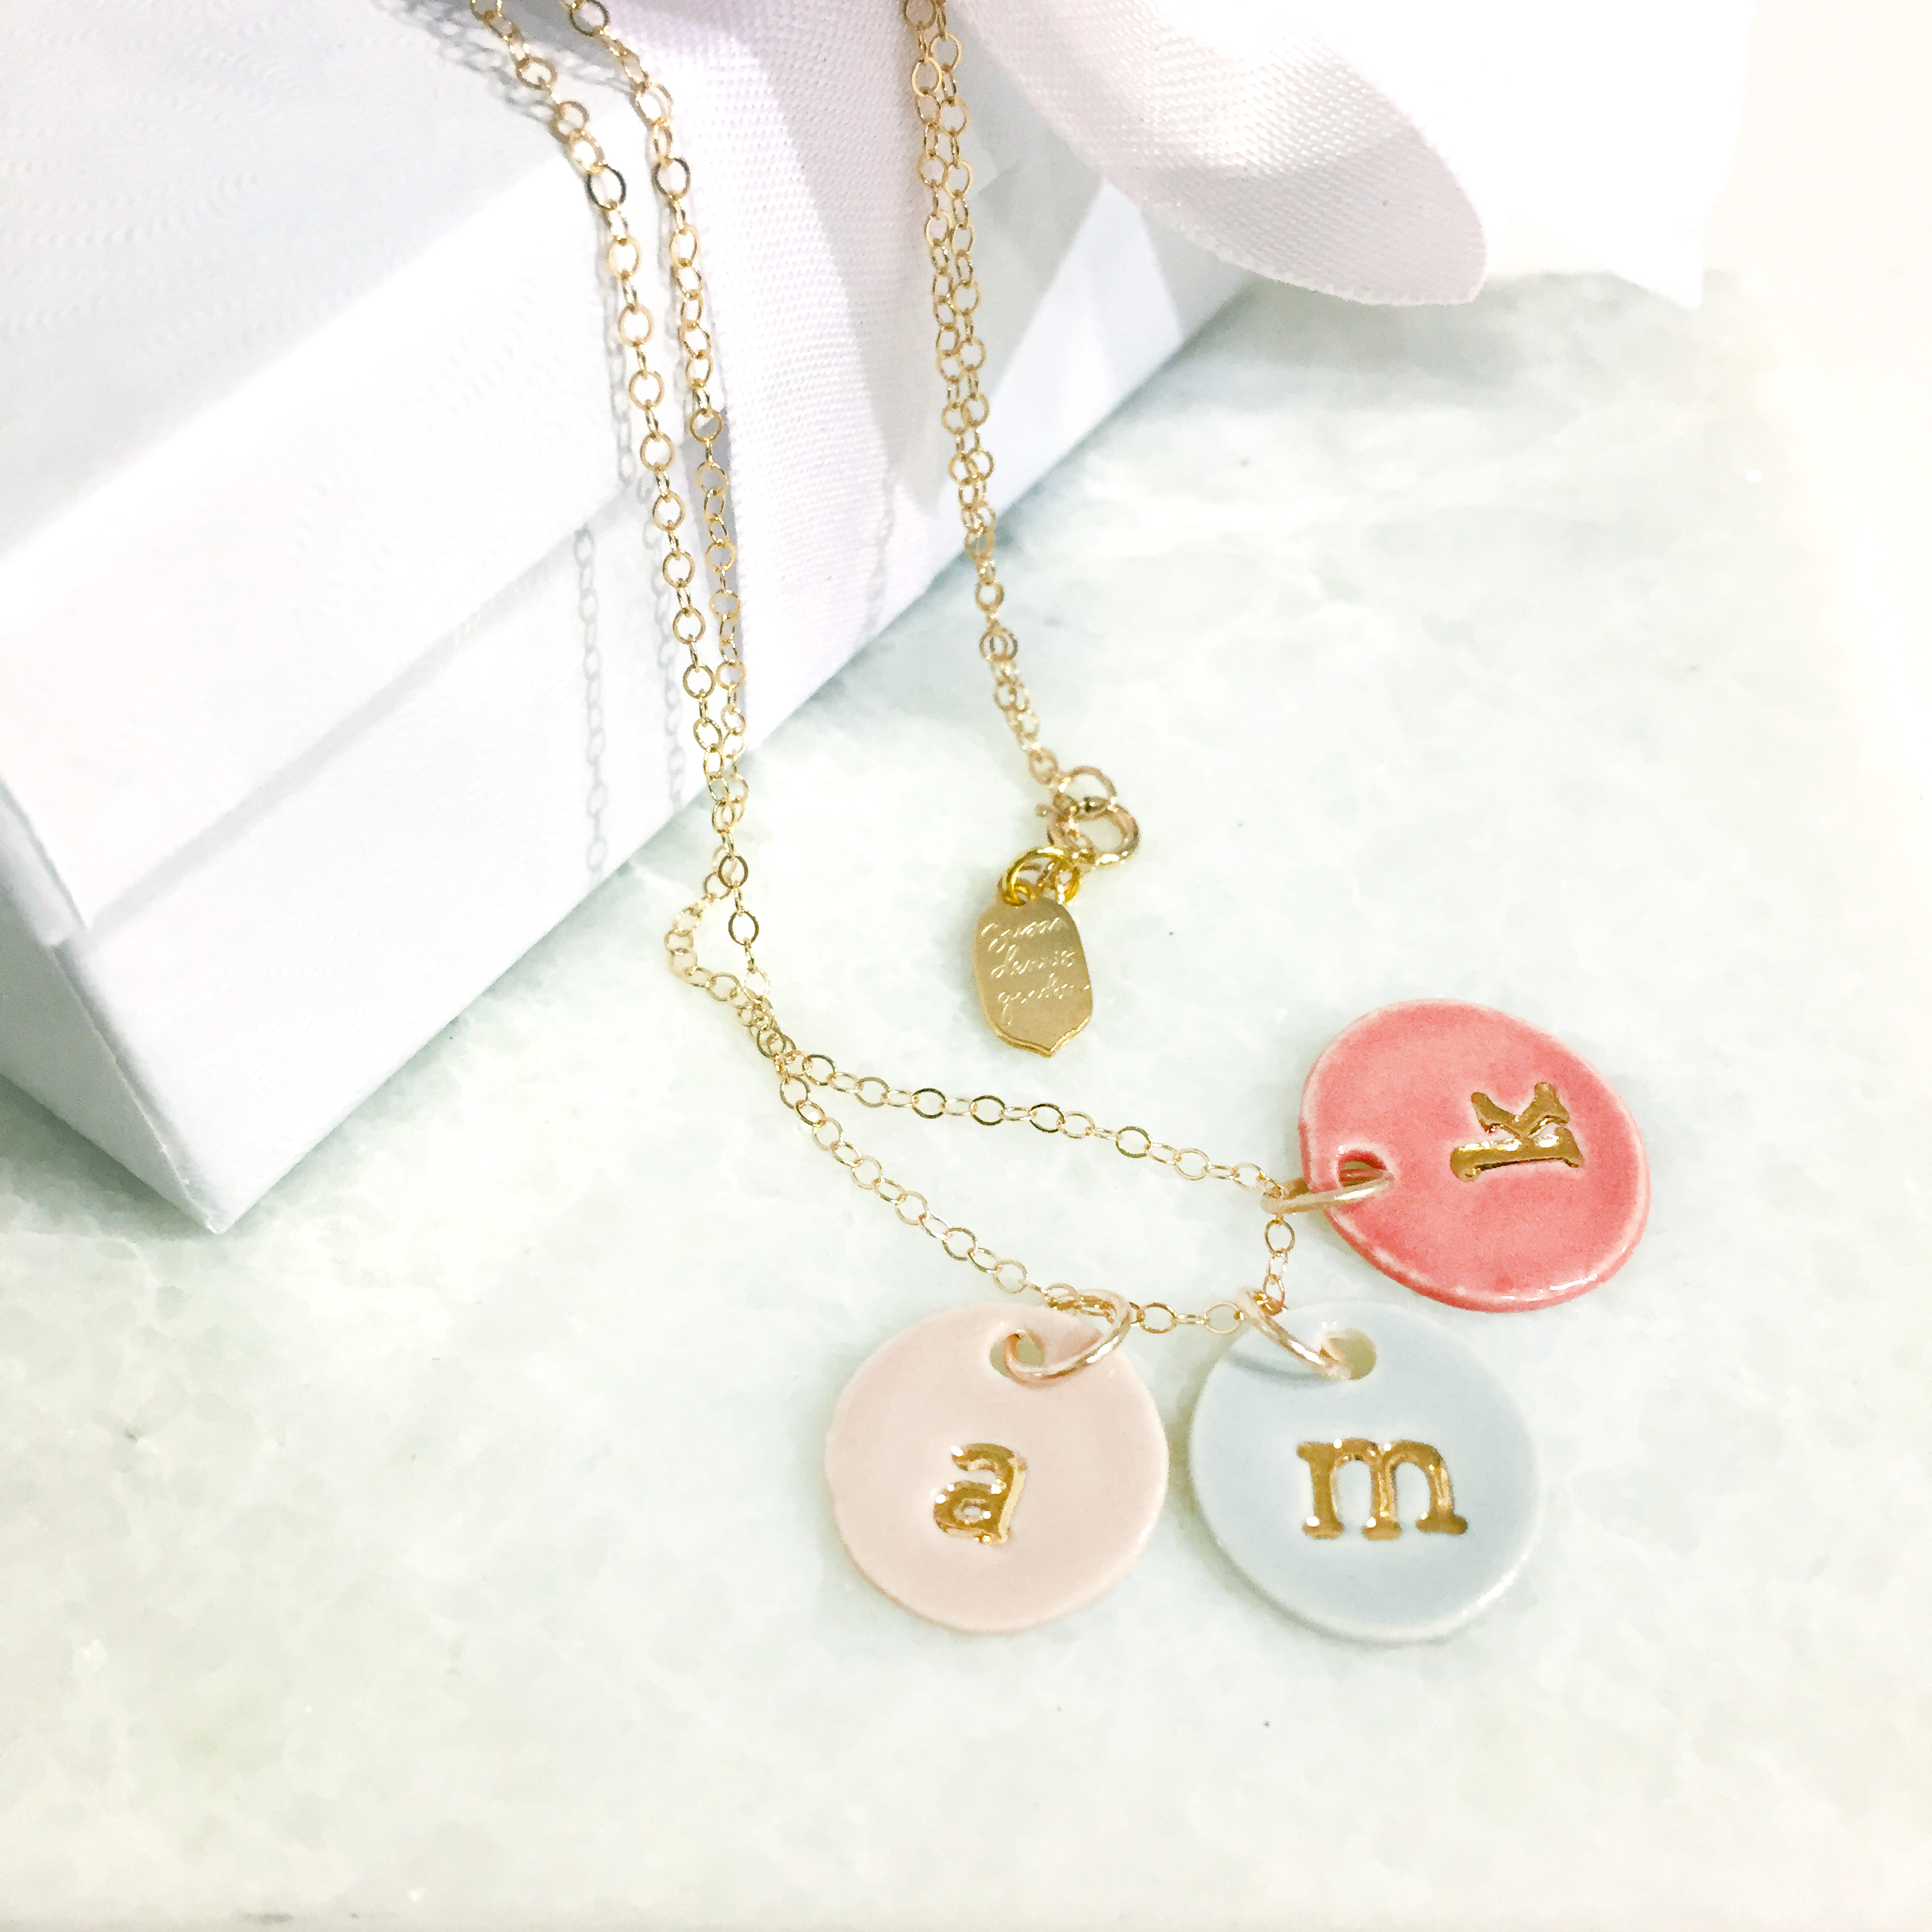 charm necklaces, 22k gold, personalize